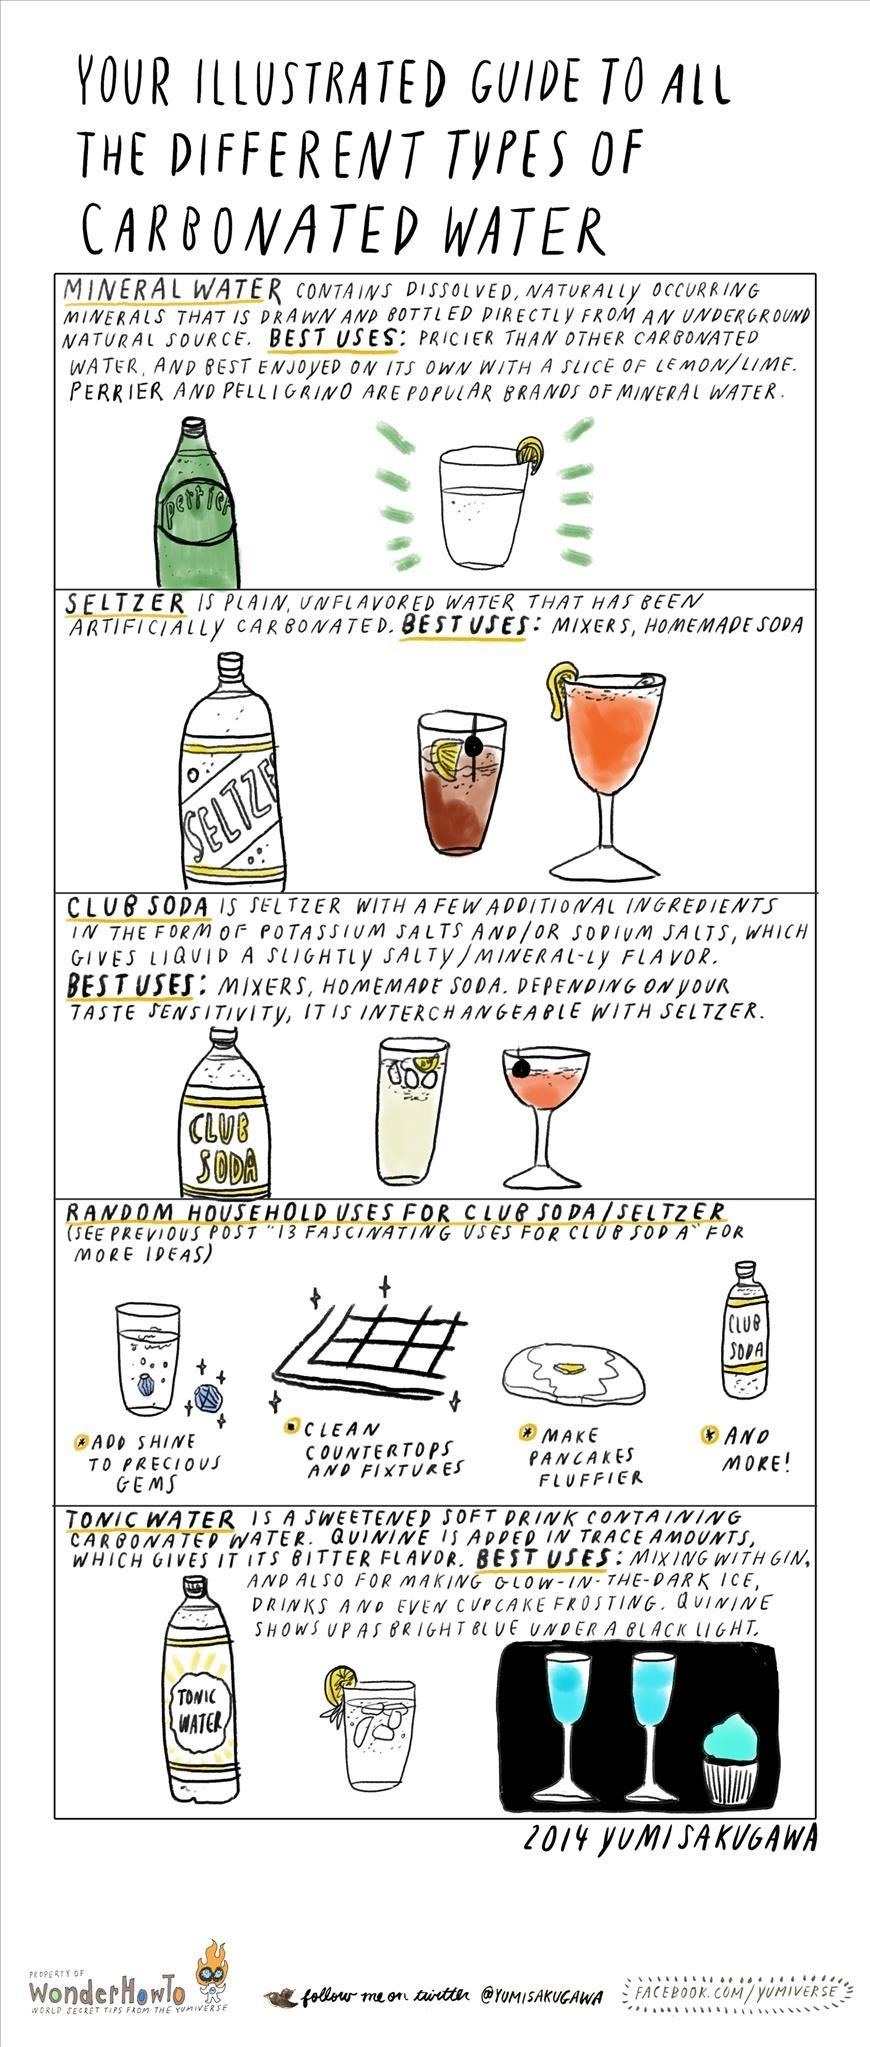 Your Illustrated Guide to Different Types of Carbonated Water